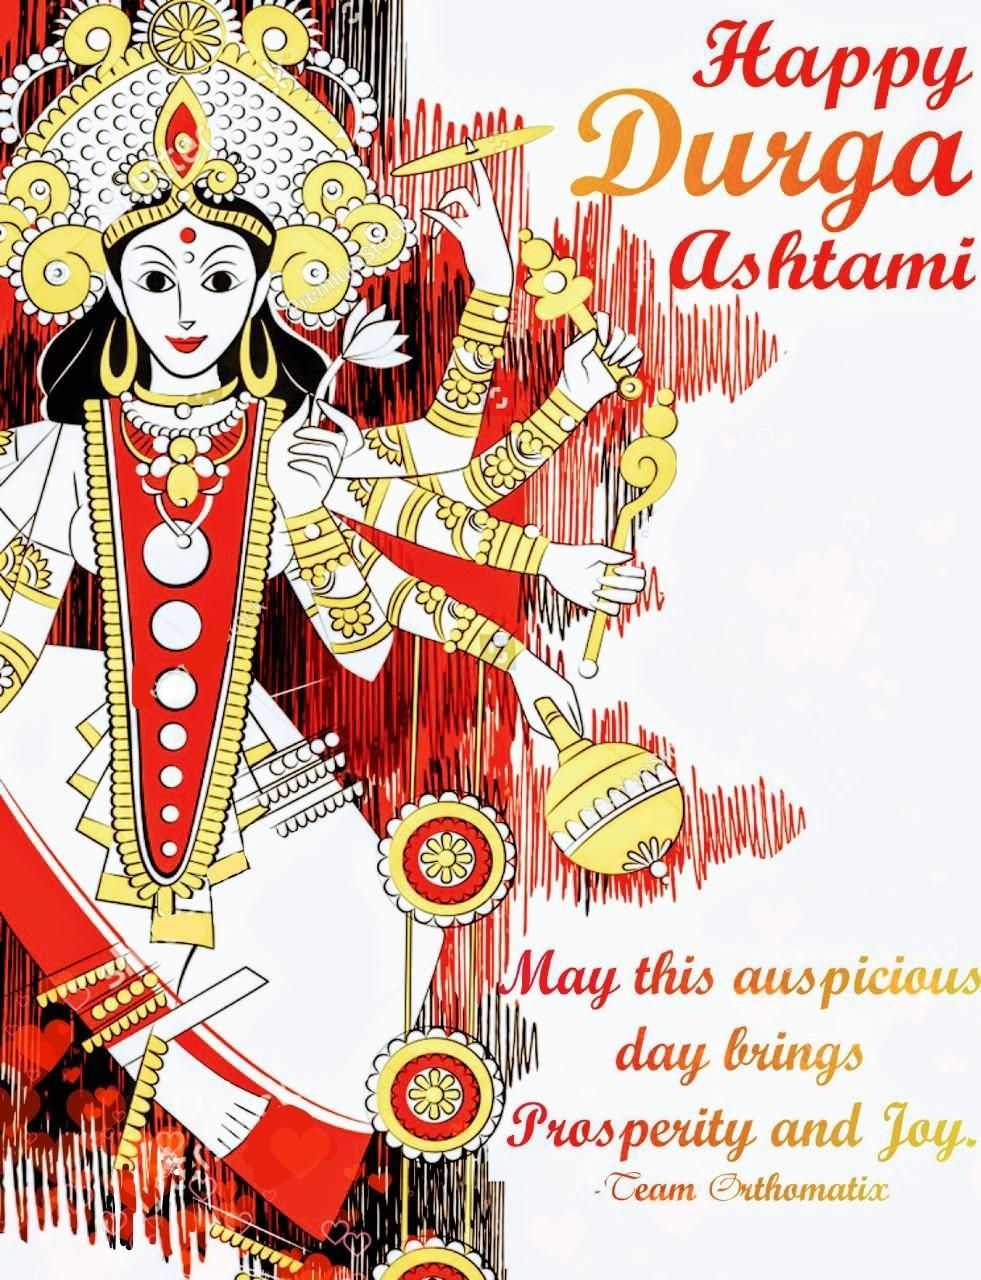 Orthomatix dental LinkedIn Durga goddess, Festivals of